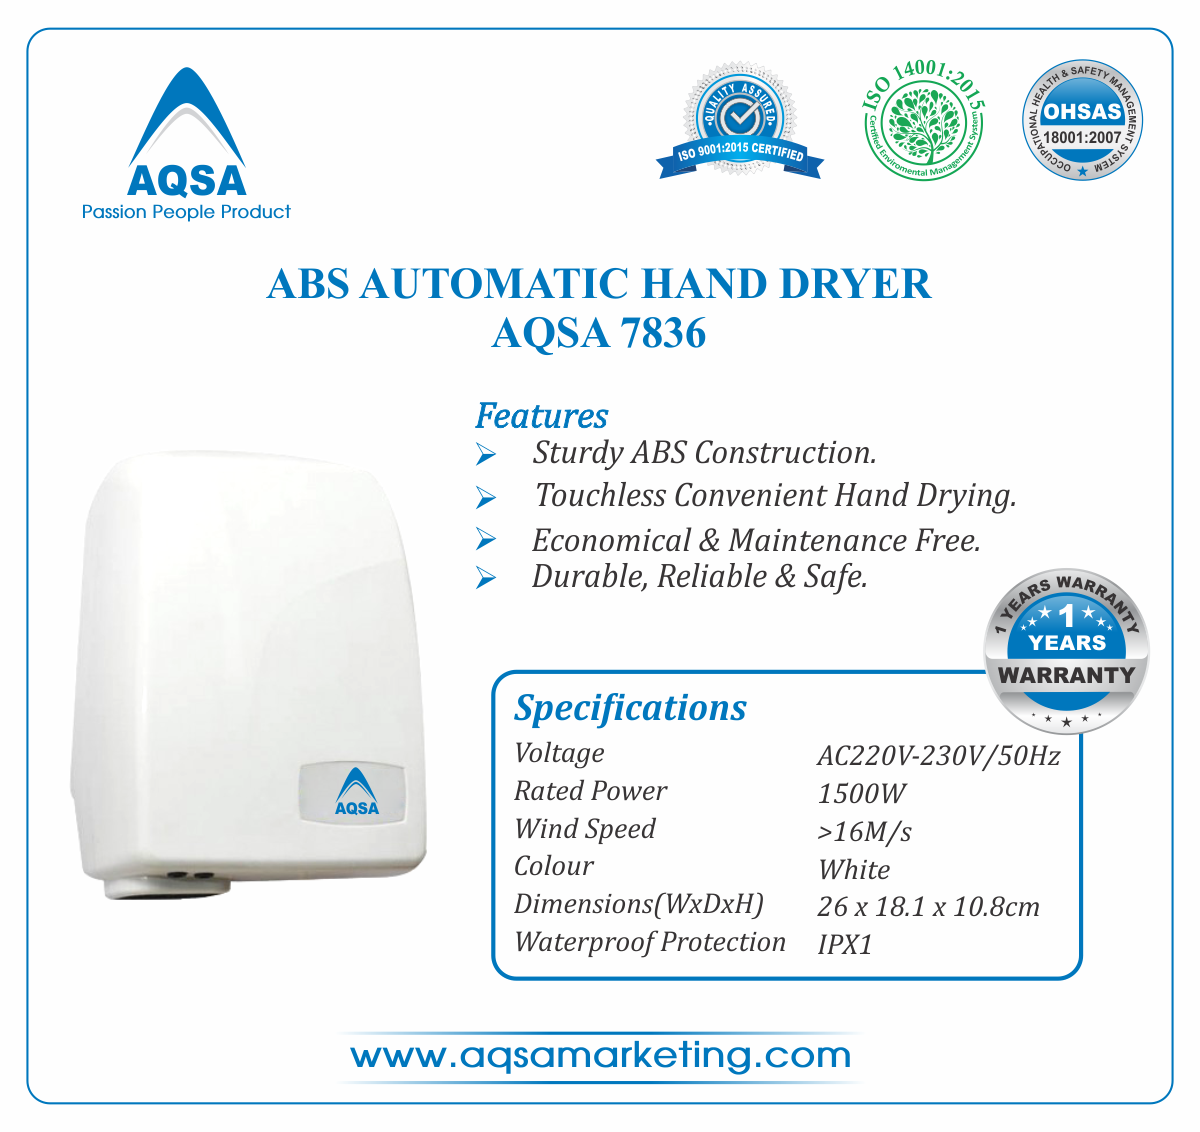 ABS Automatic Hand Dryer AQSA-7836 image